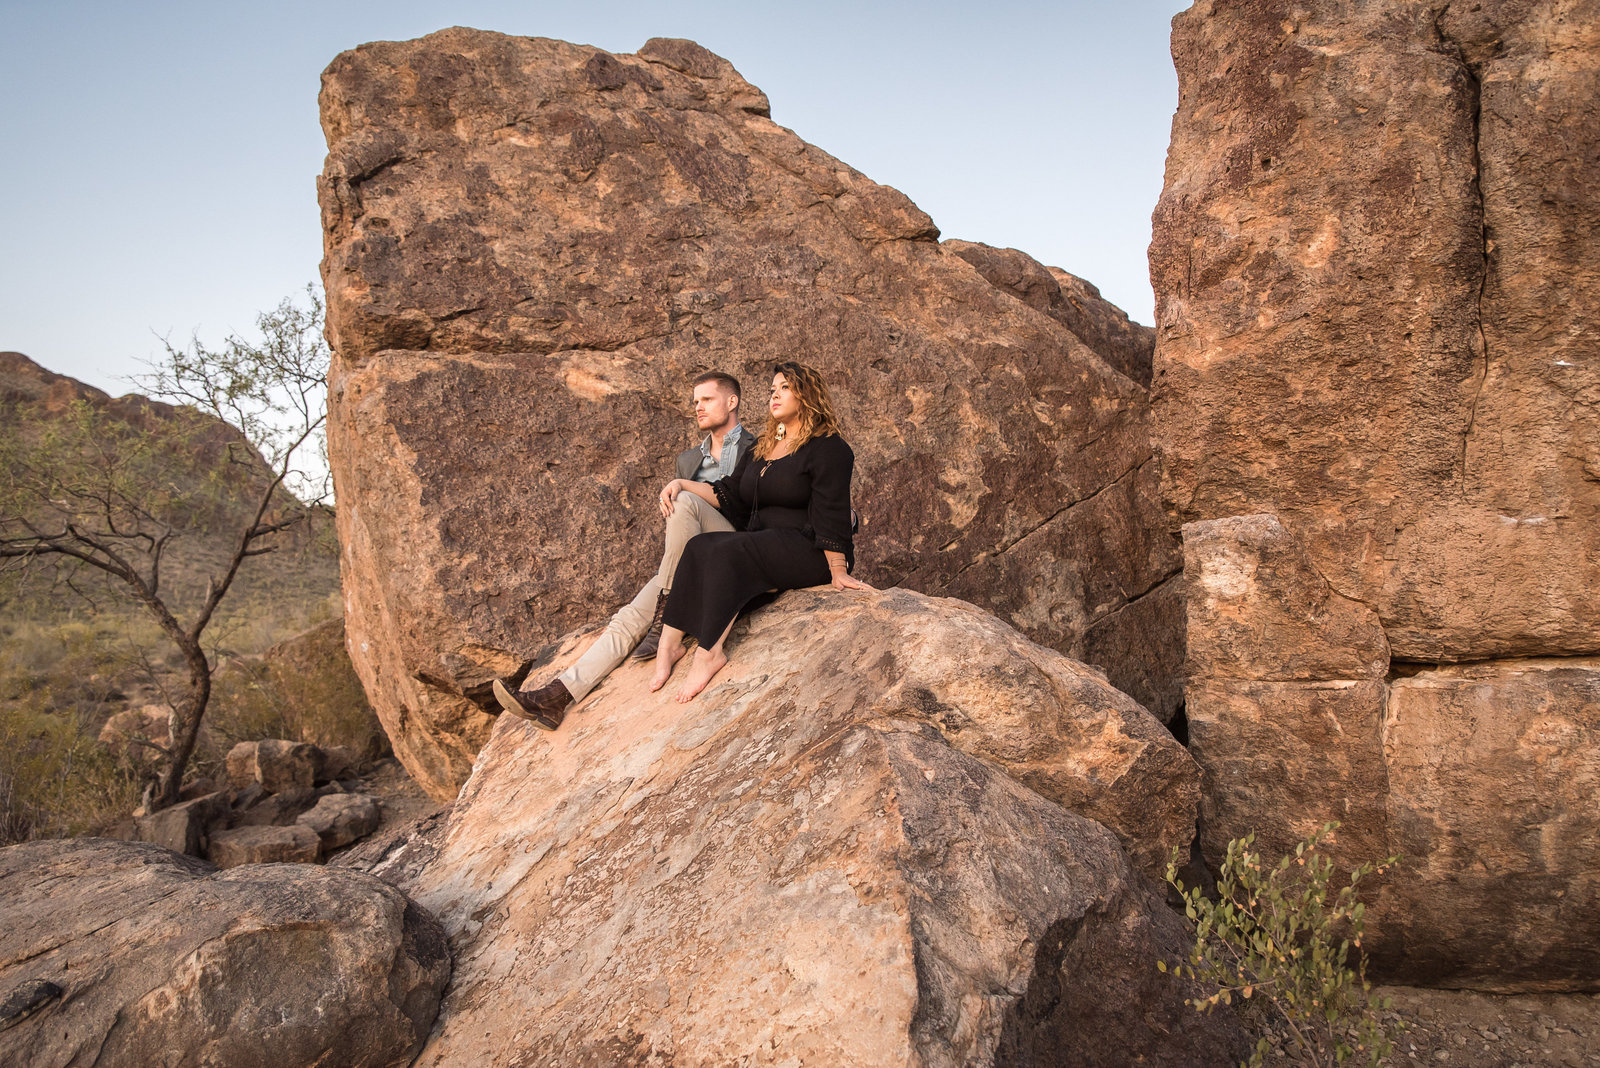 Tucson Gates Pass Desert Engagement Session Photo of Engaged Couple Sitting on Red Rocks | Tucson Wedding Photographer | West End Photography